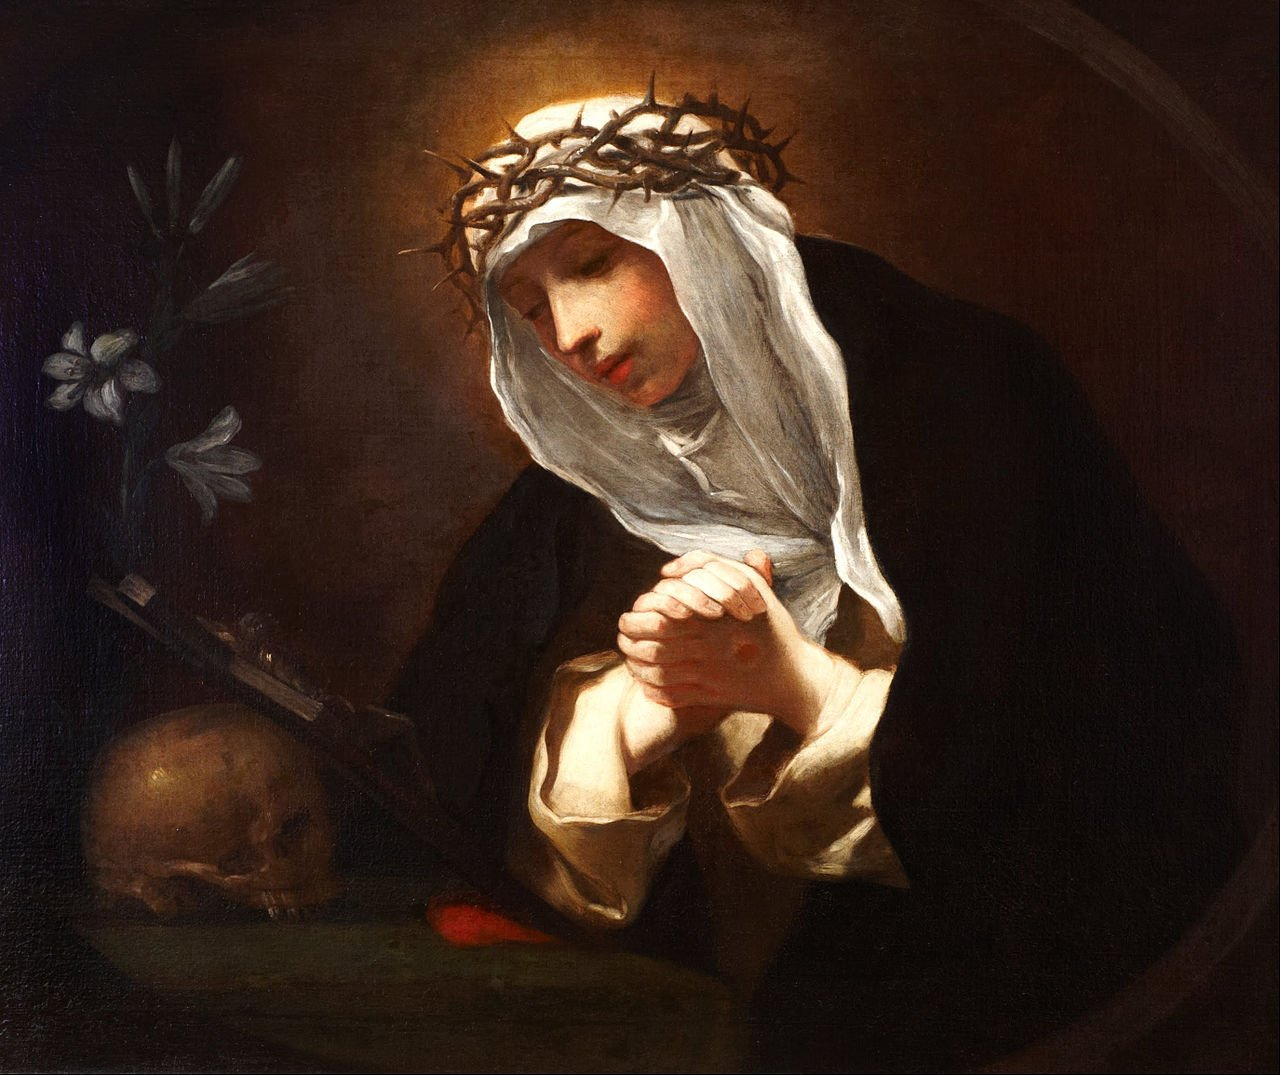 April 30: St. Catherine of Siena